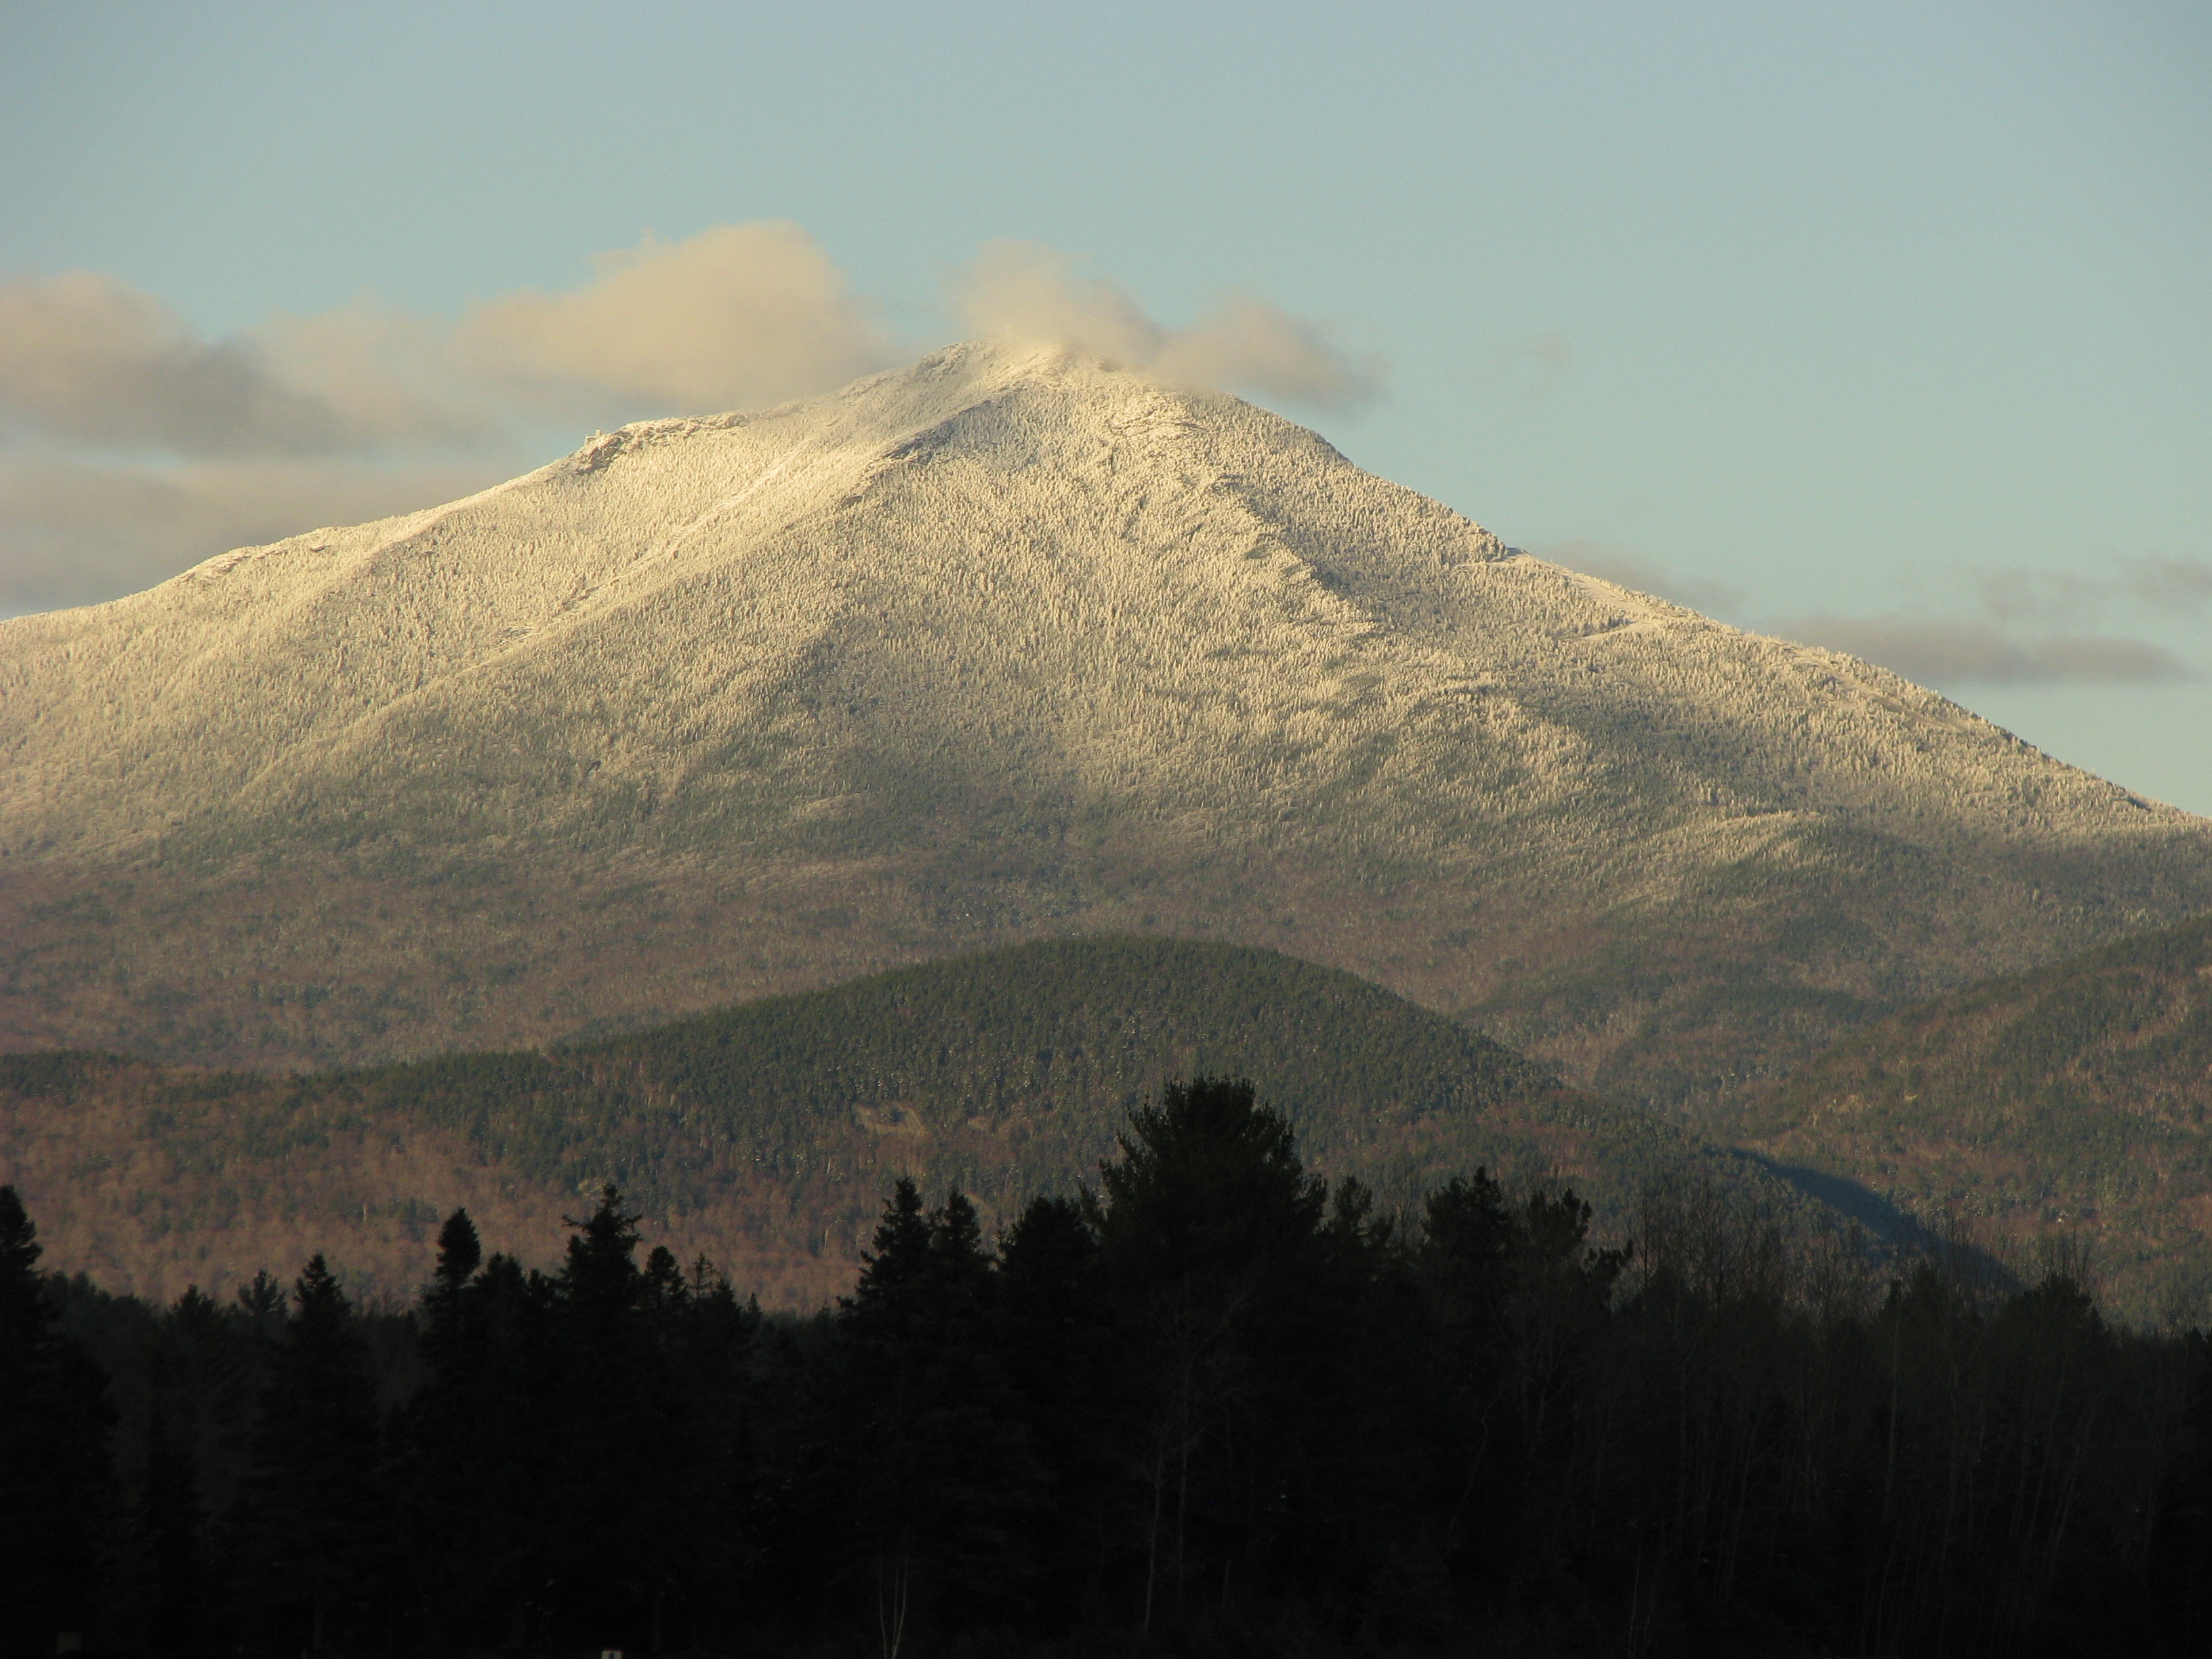 Whiteface_Mountain_from_Lake_Placid_Airport.JPG (3264×2448)